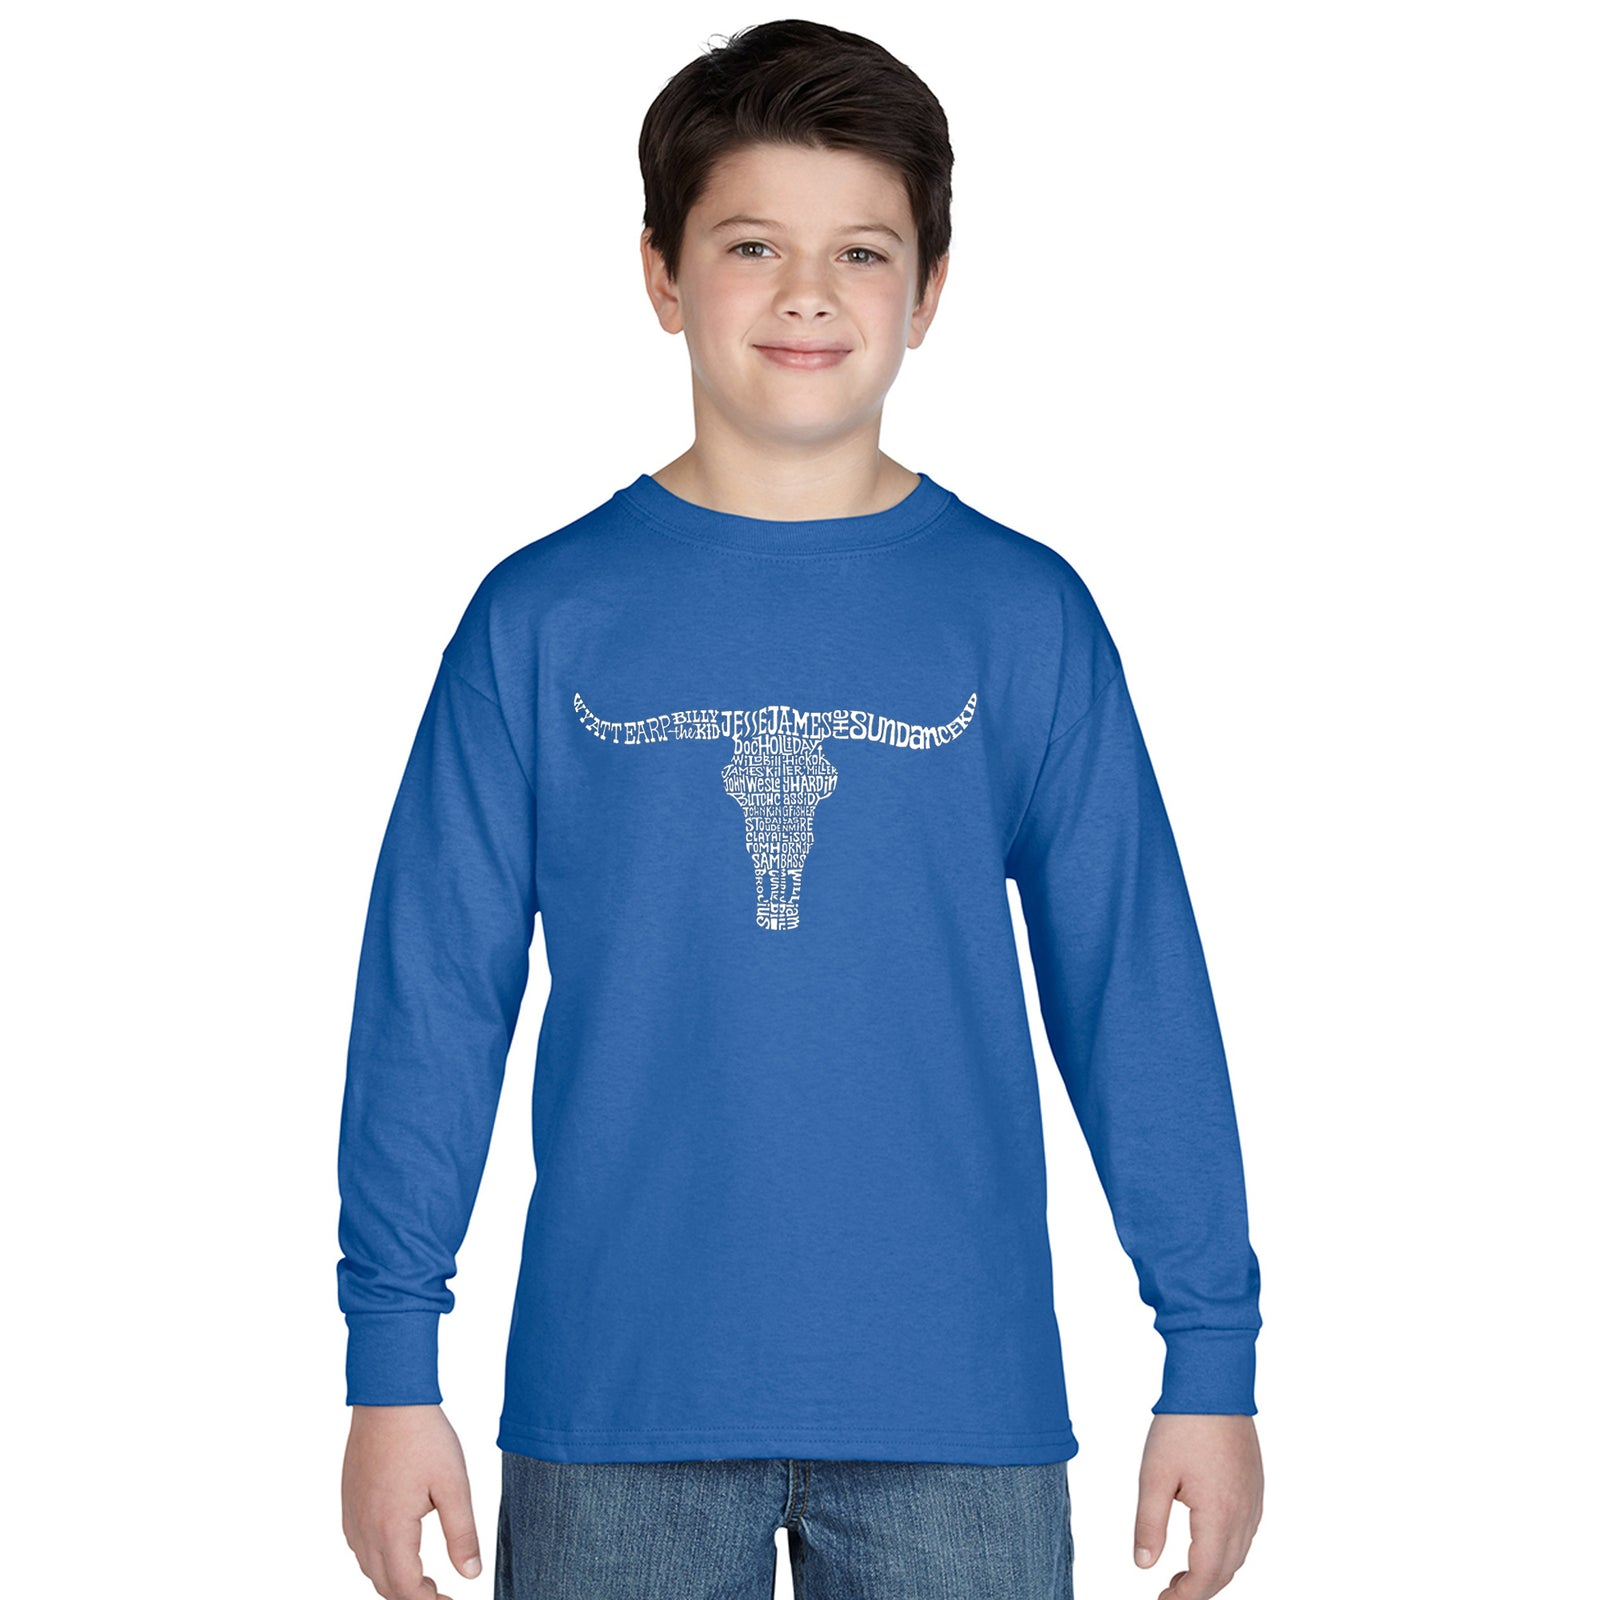 Boy's Word Art Long Sleeve - Names of Legendary Outlaws